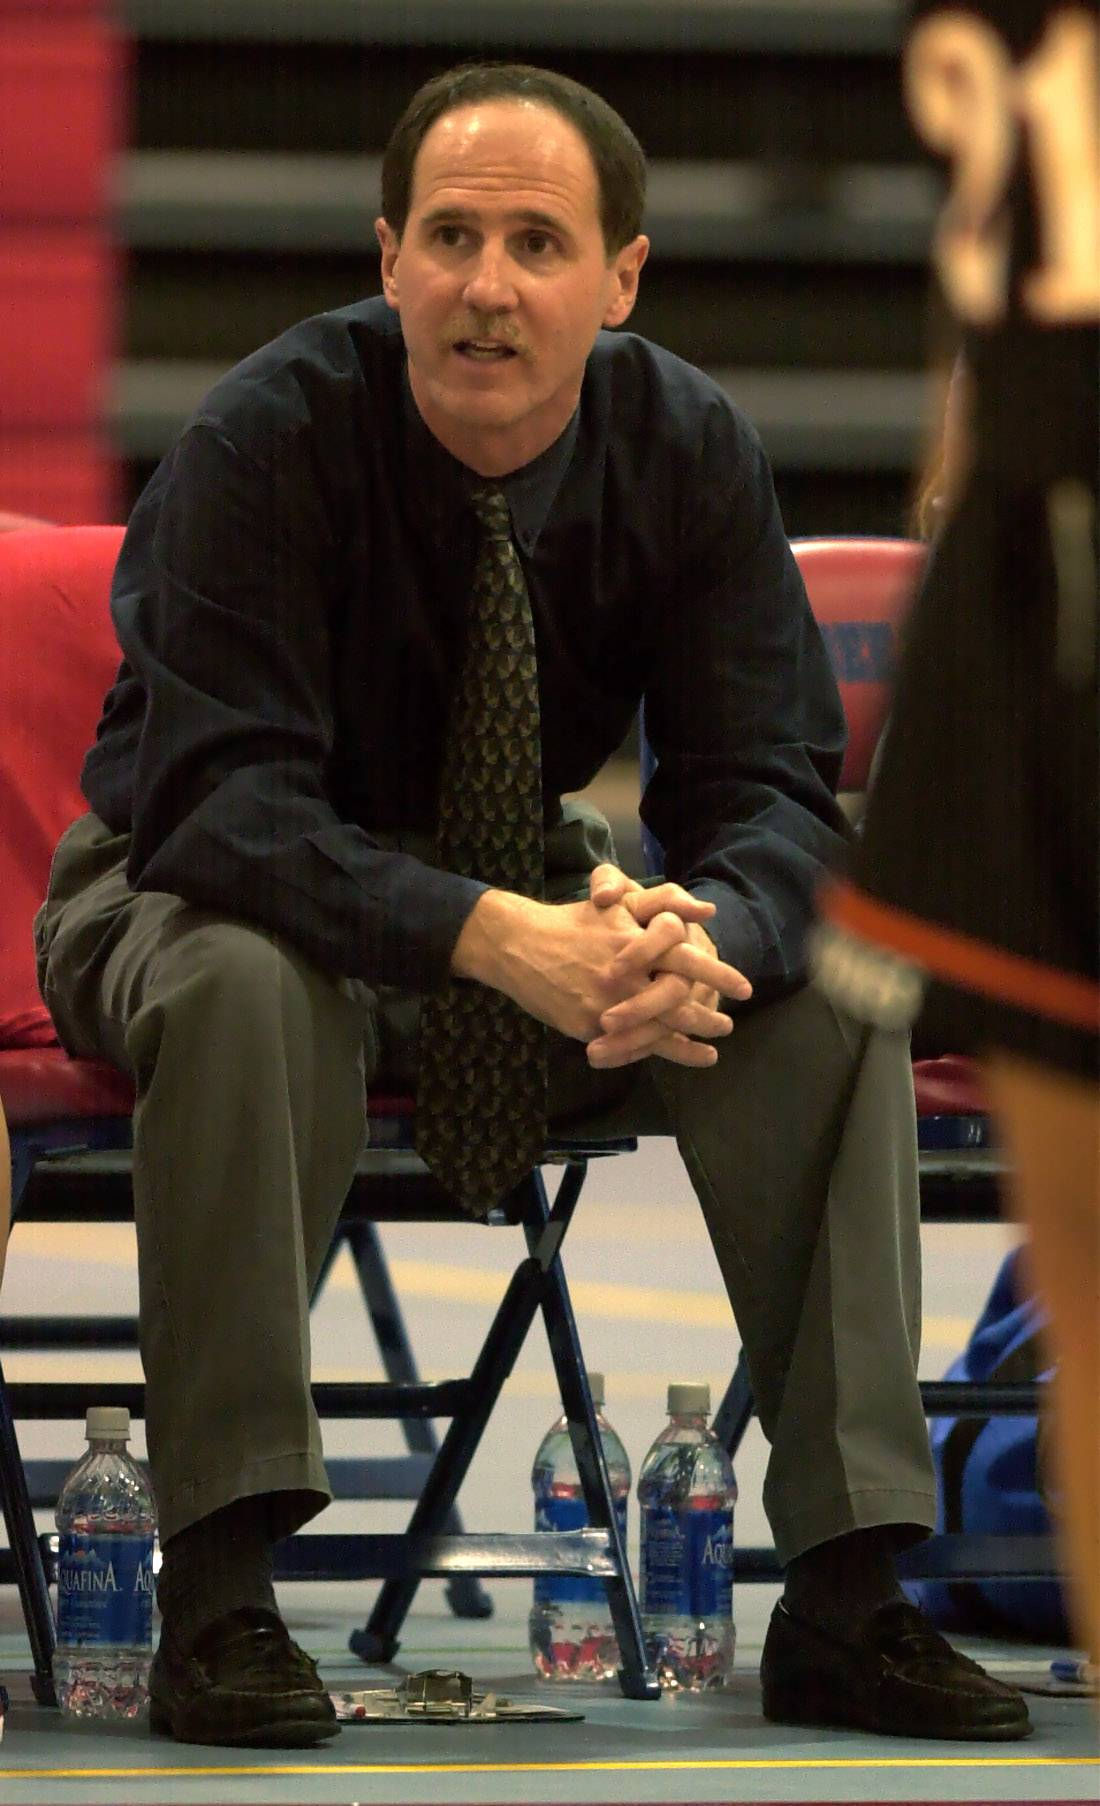 Retired Dundee-Crown girls basketball coach Joe Komaromy will coach the Chargers' girls team on May 12 when alumni from D-C and Jacobs meet in a benefit game at D-C.